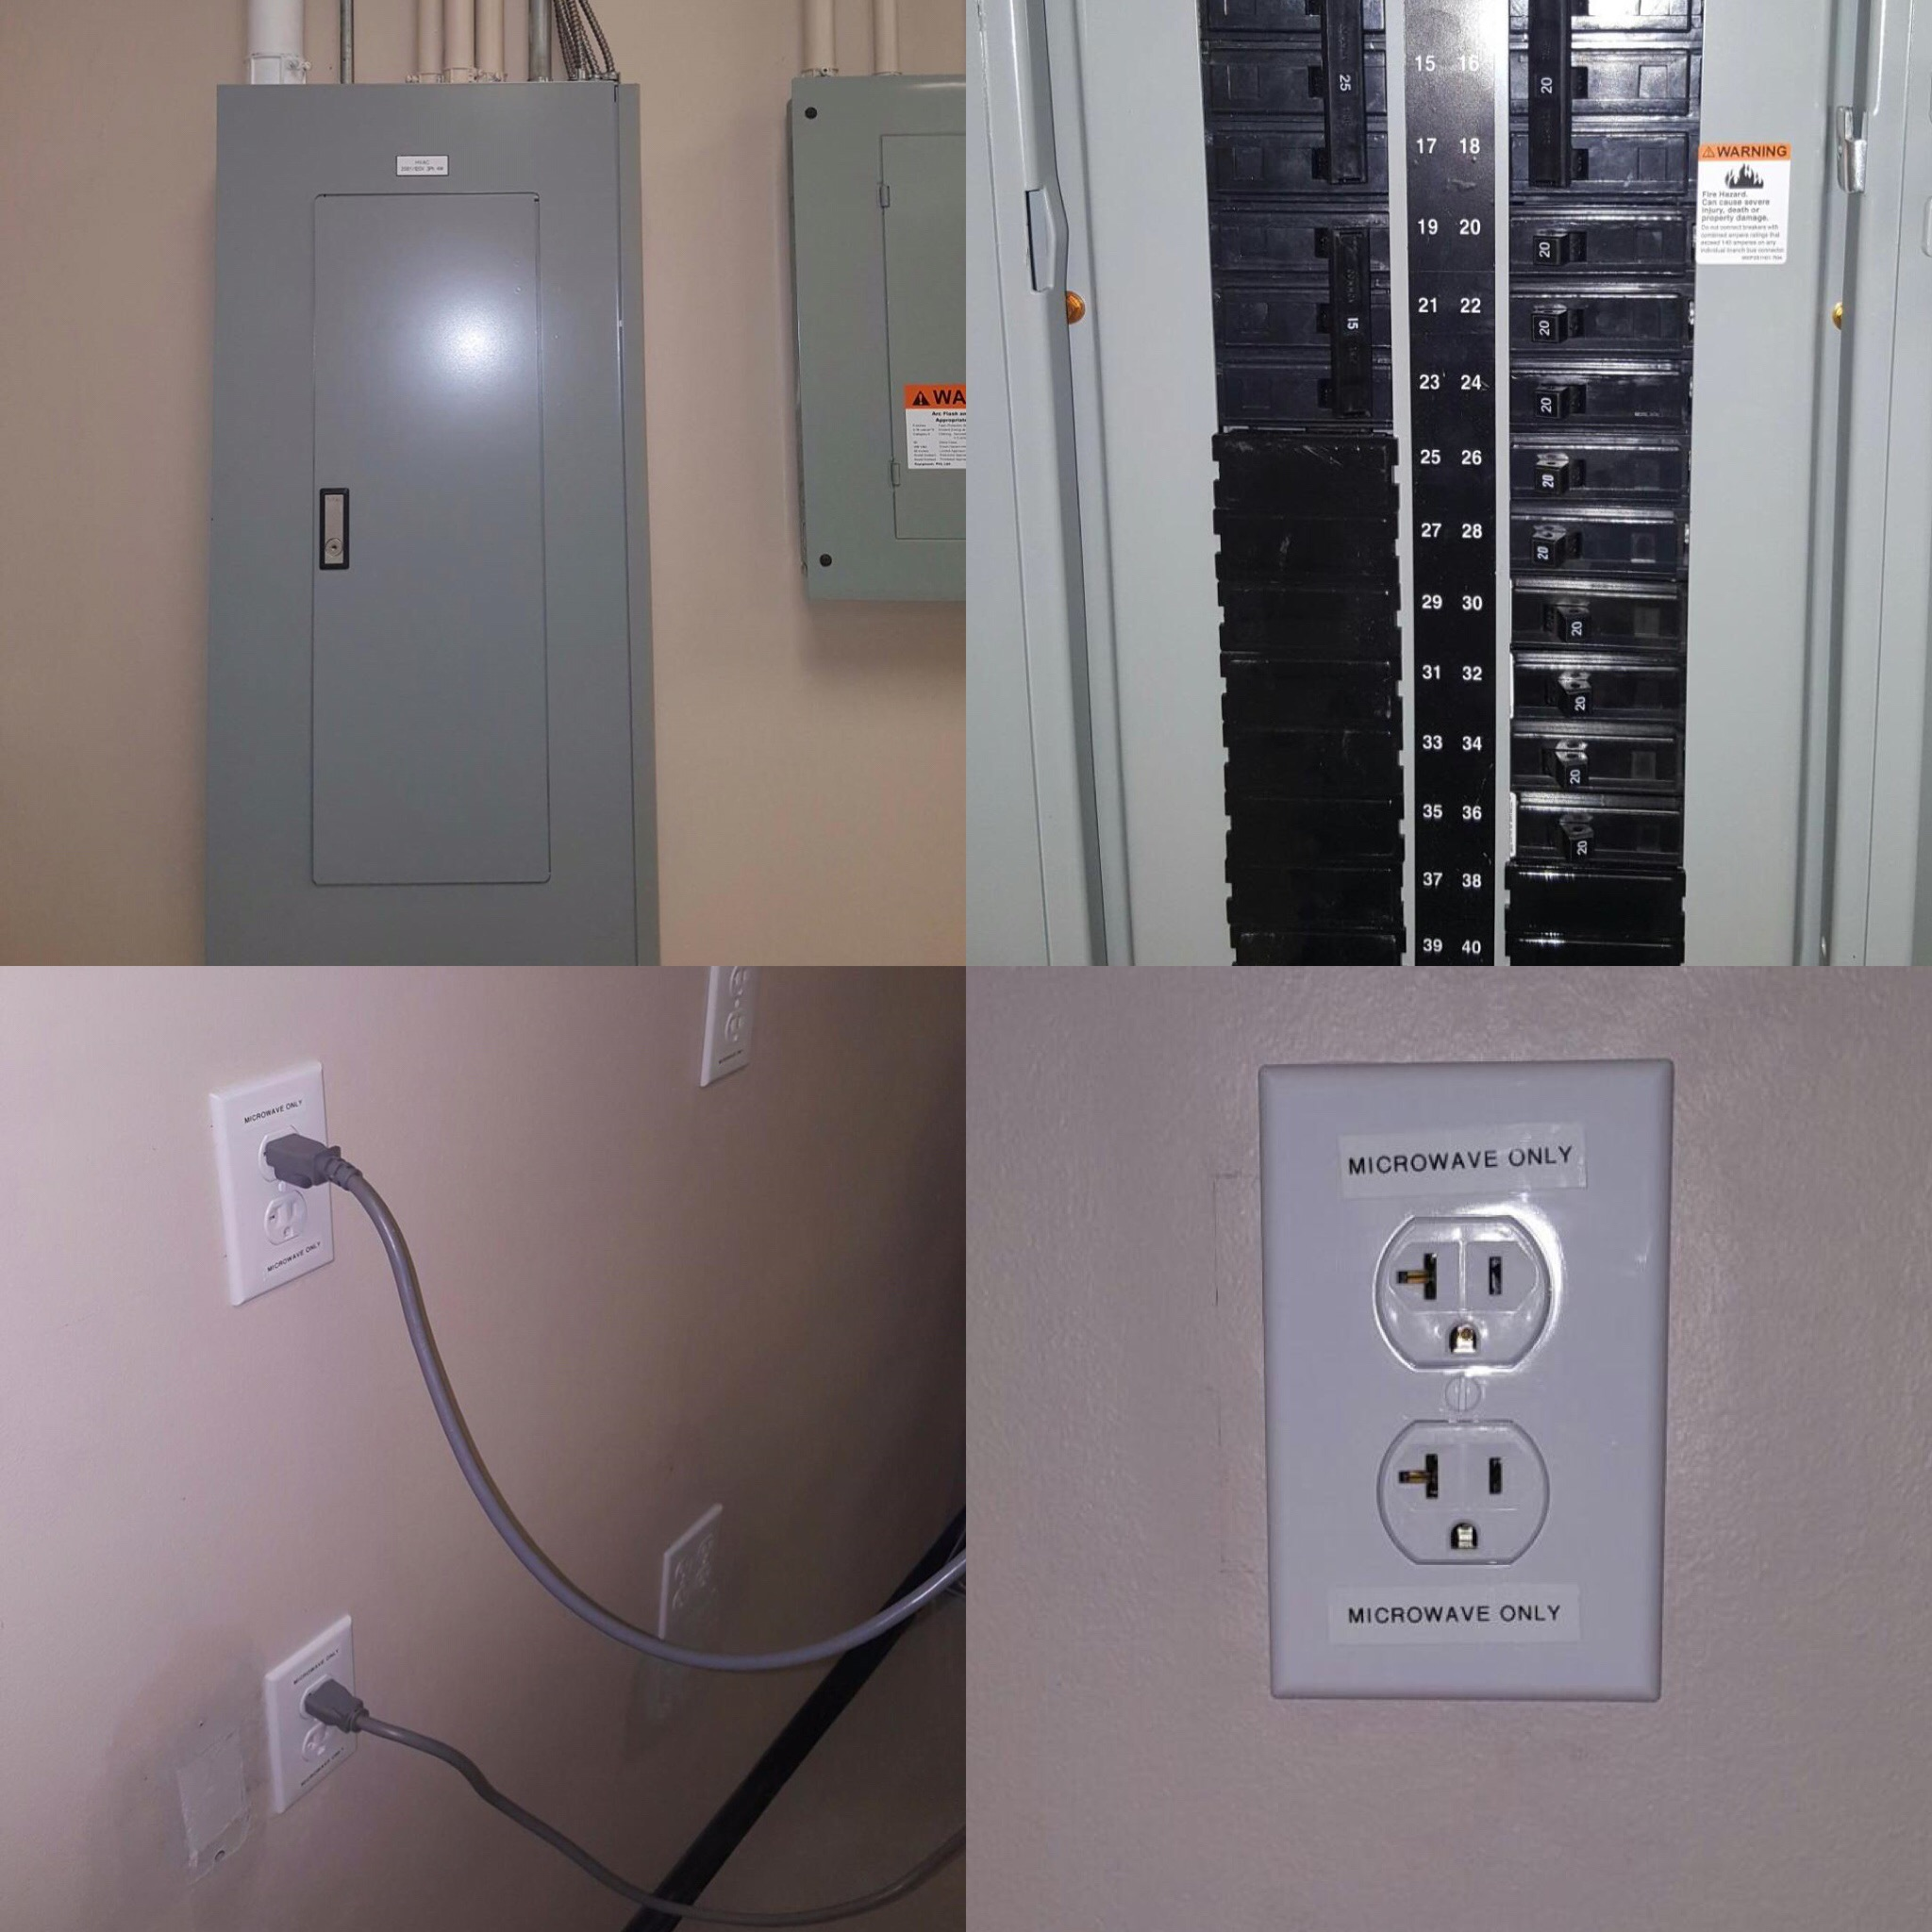 Dedicated Circuits Appliance Wiring Electrician Rewiring A House One Circuit At Time And Outlets For Appliances